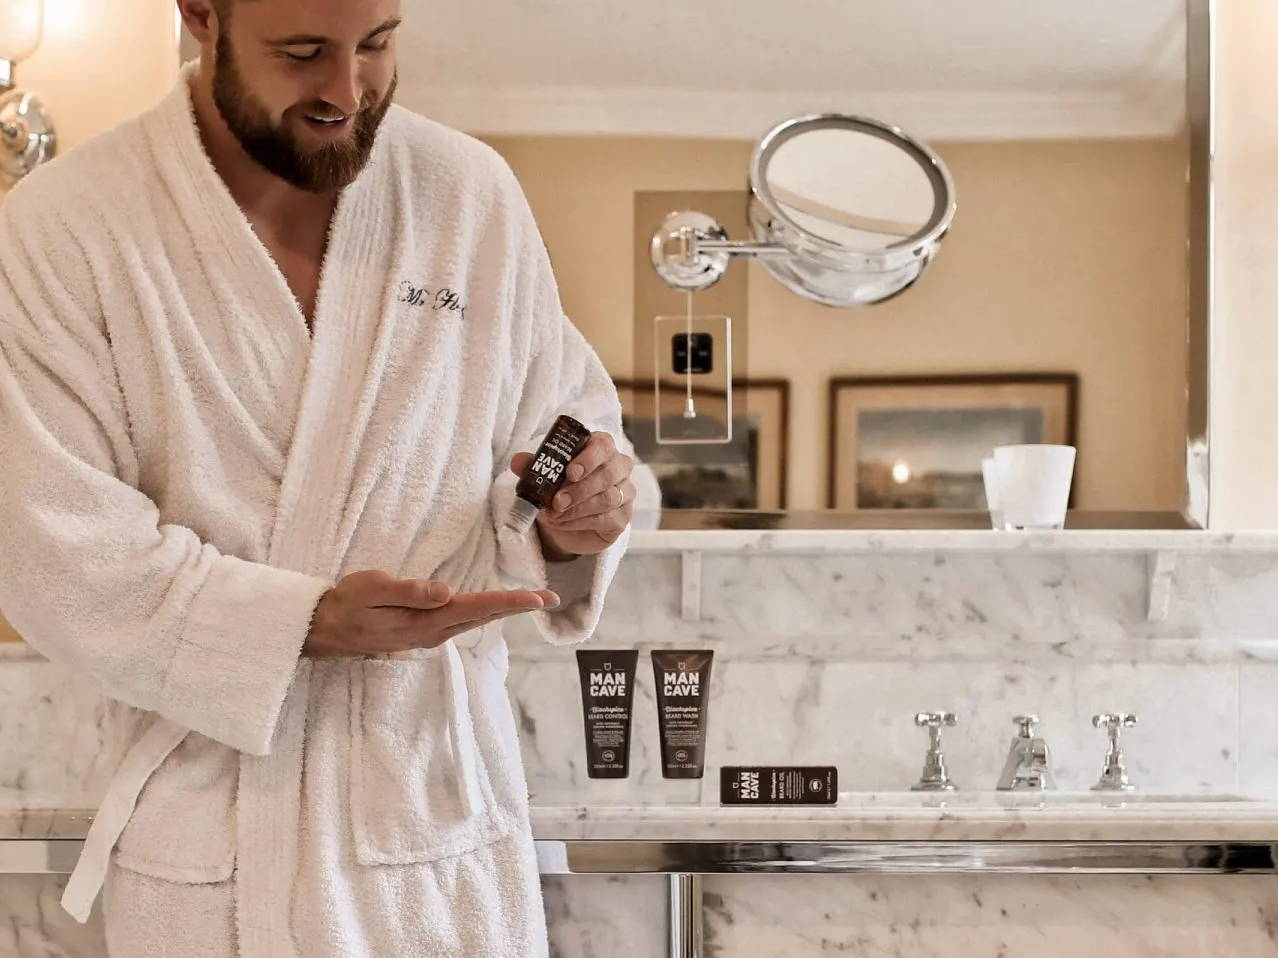 The ManCave Beard Oil being squeezed onto a mans palm in a bath robe with the ManCave blackspice beard control and beard wash on the side of the bathroom sink.